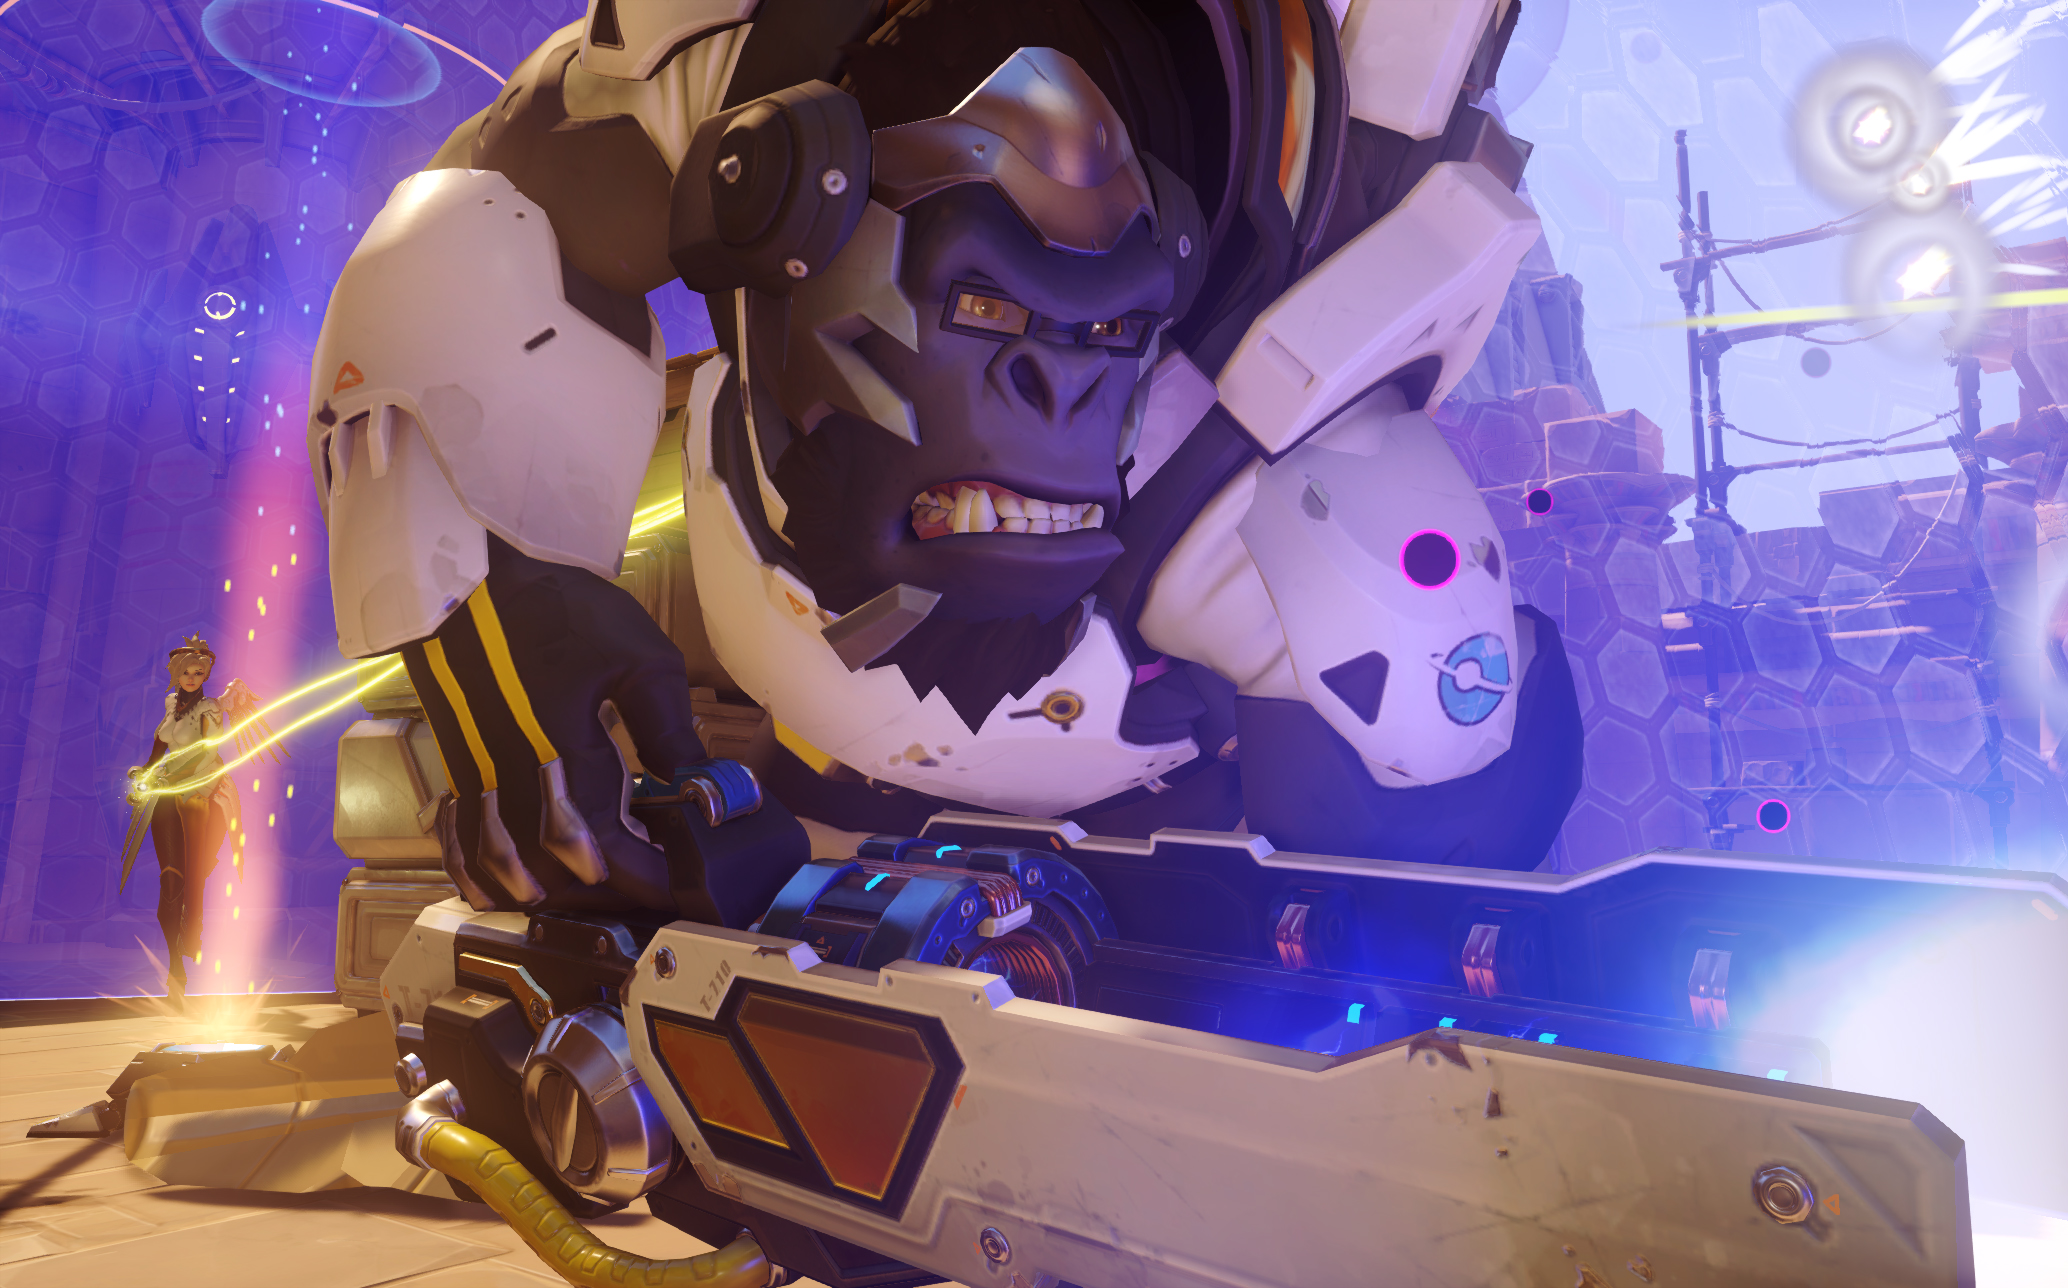 Overwatch open beta nabs 9.7 million players for Blizzard